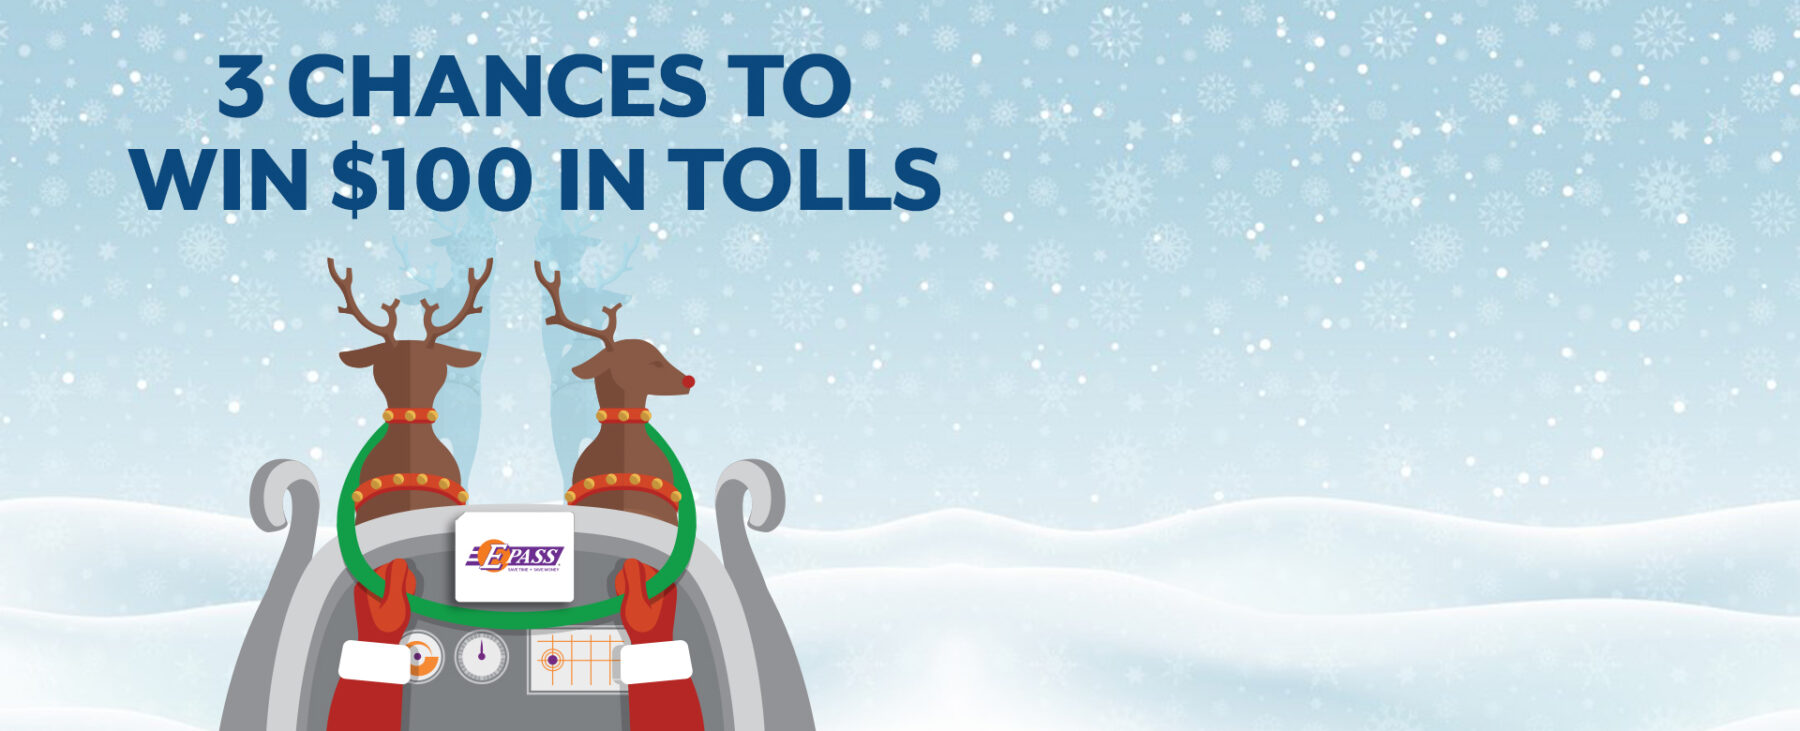 3 chances to win $100 in tolls